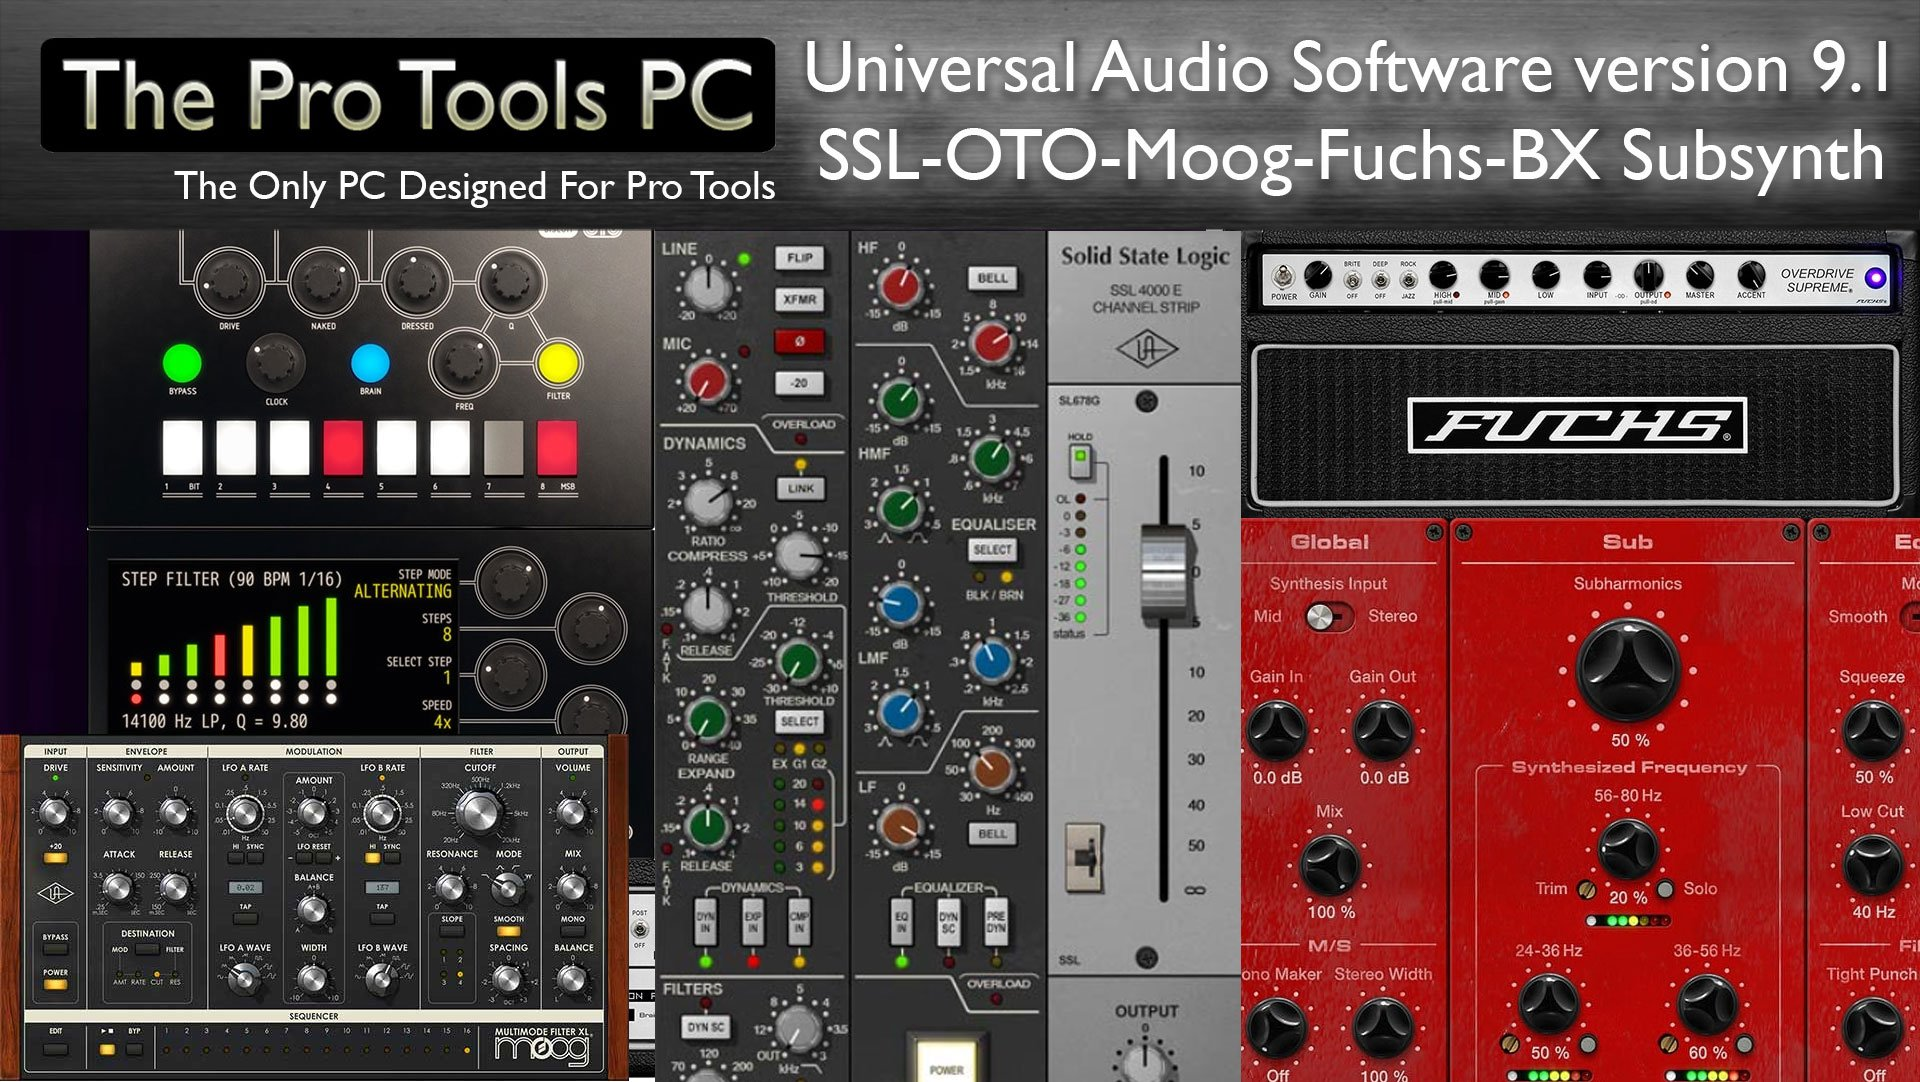 Universal Audio Announce UAD 9 1 Software & Plug-Ins - The